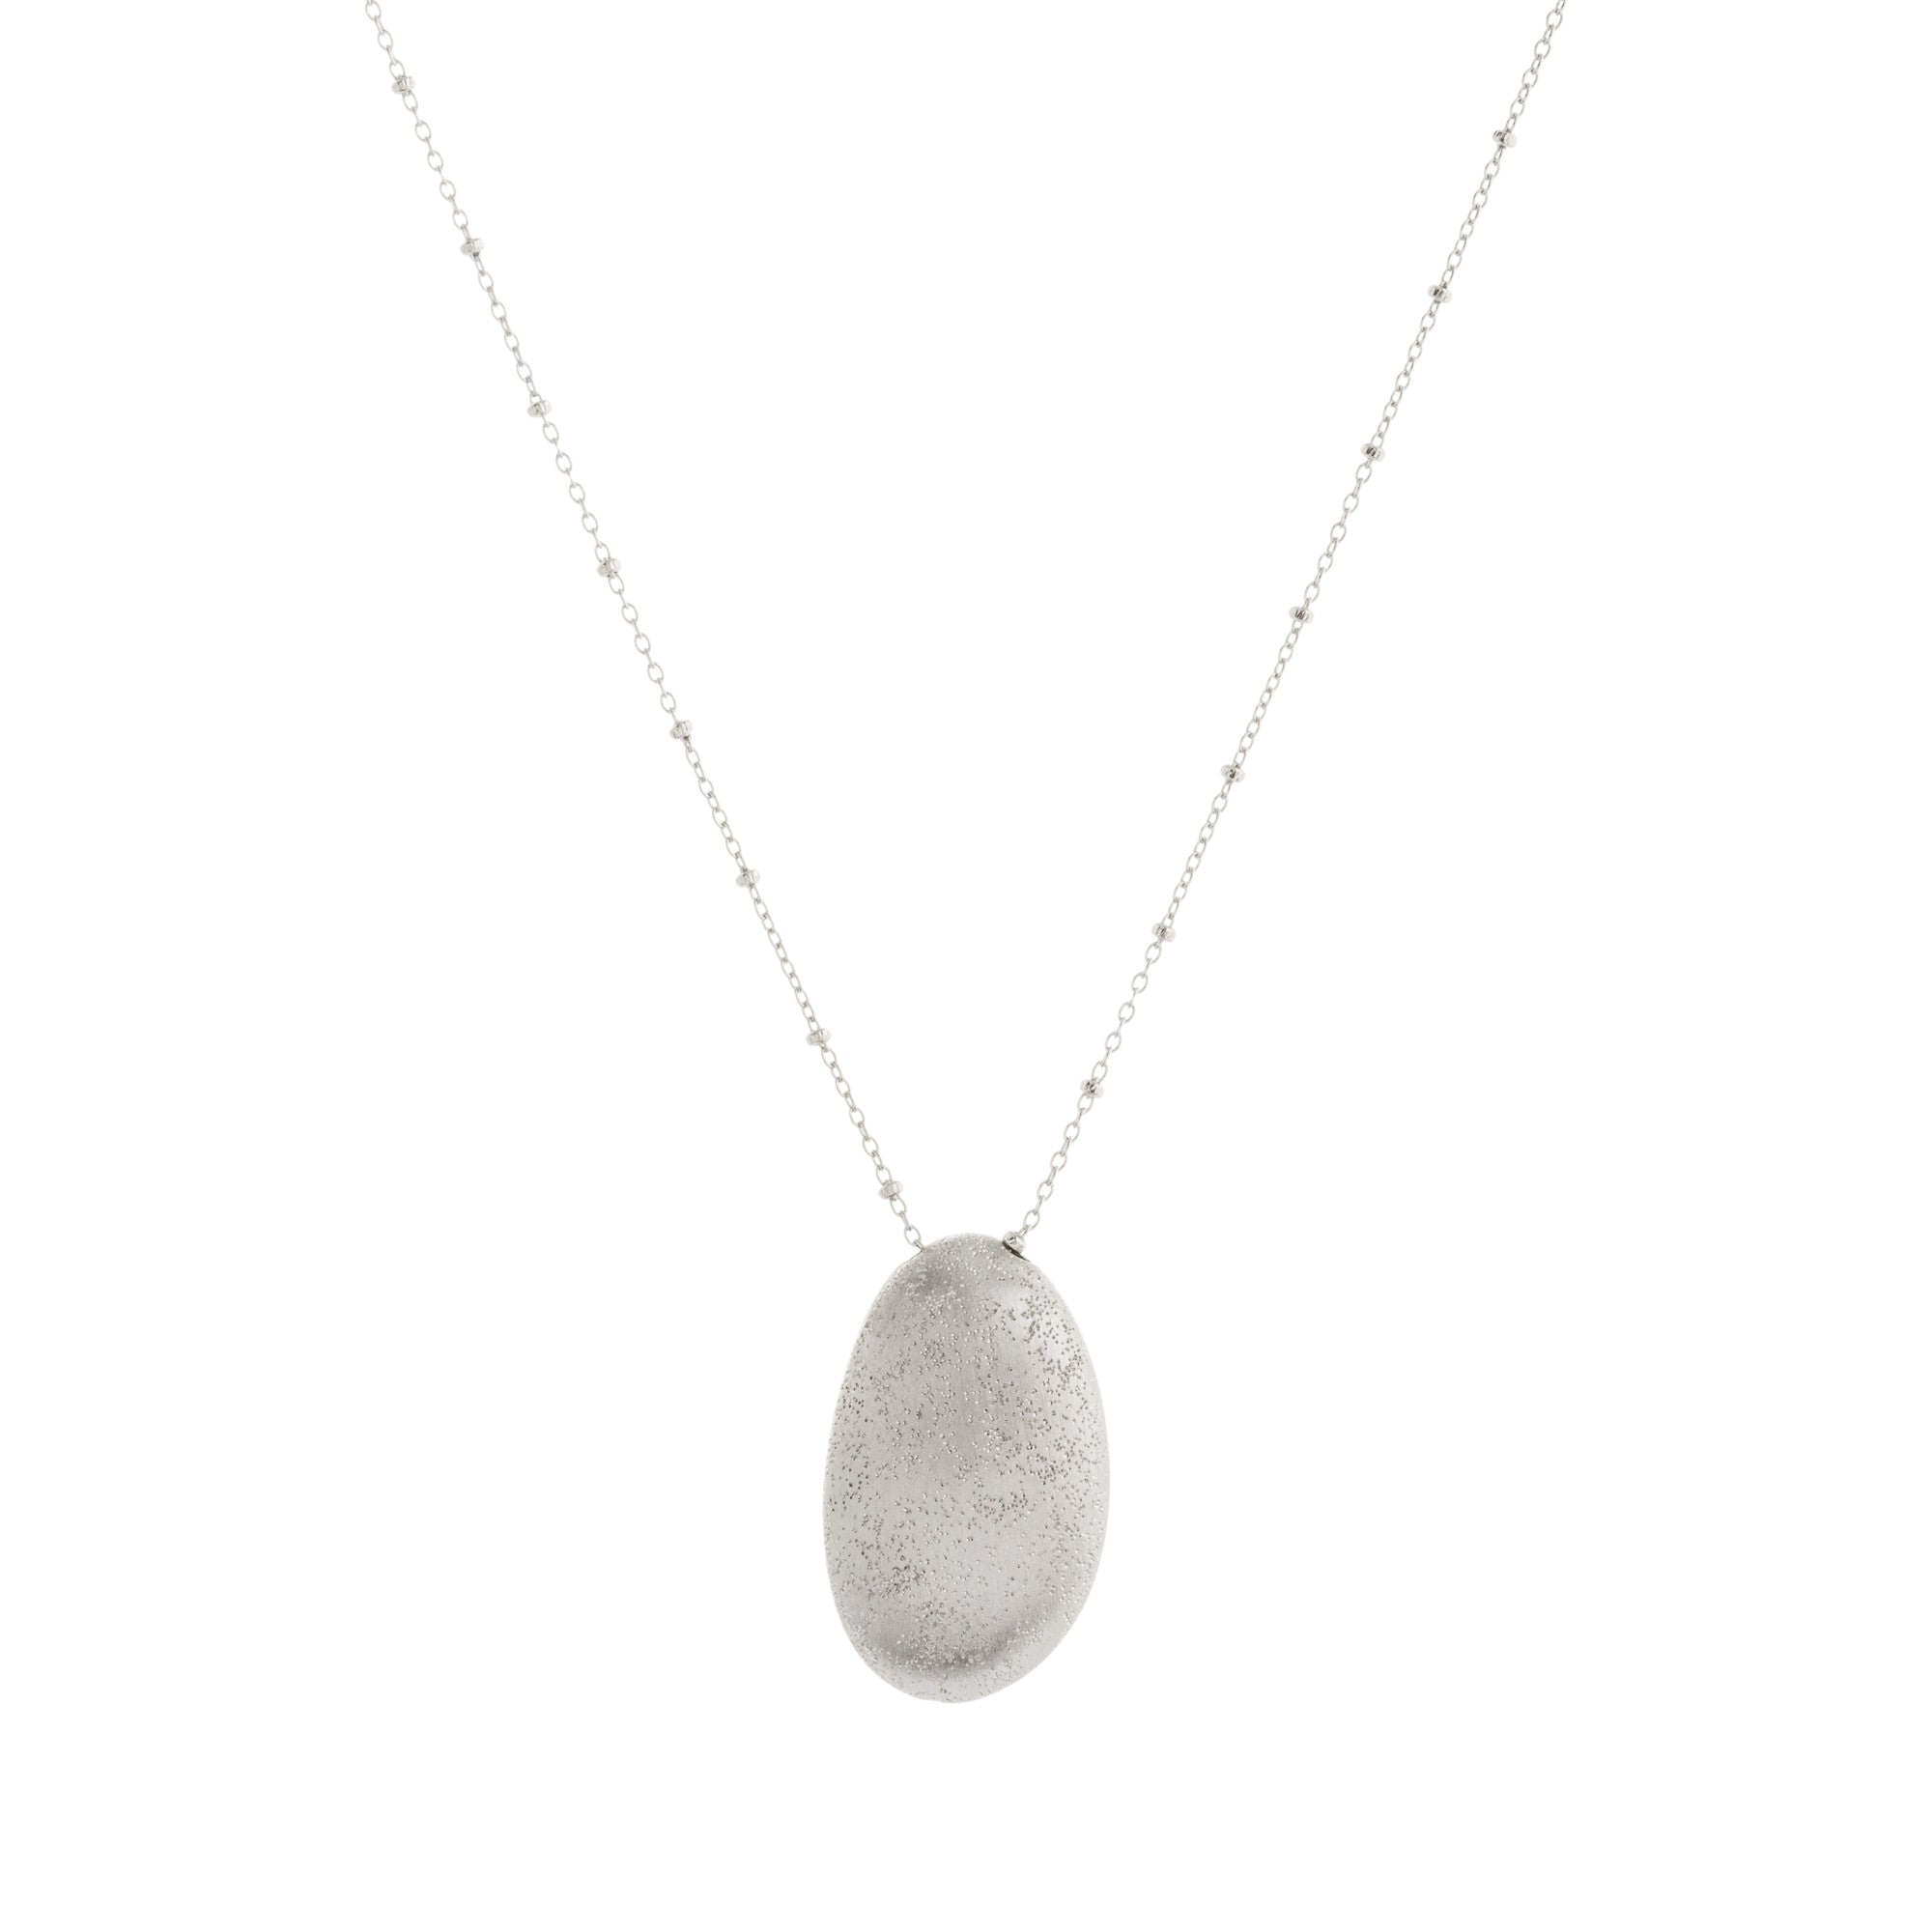 Satin Textured Abstract Drop with Beaded Chain Necklace